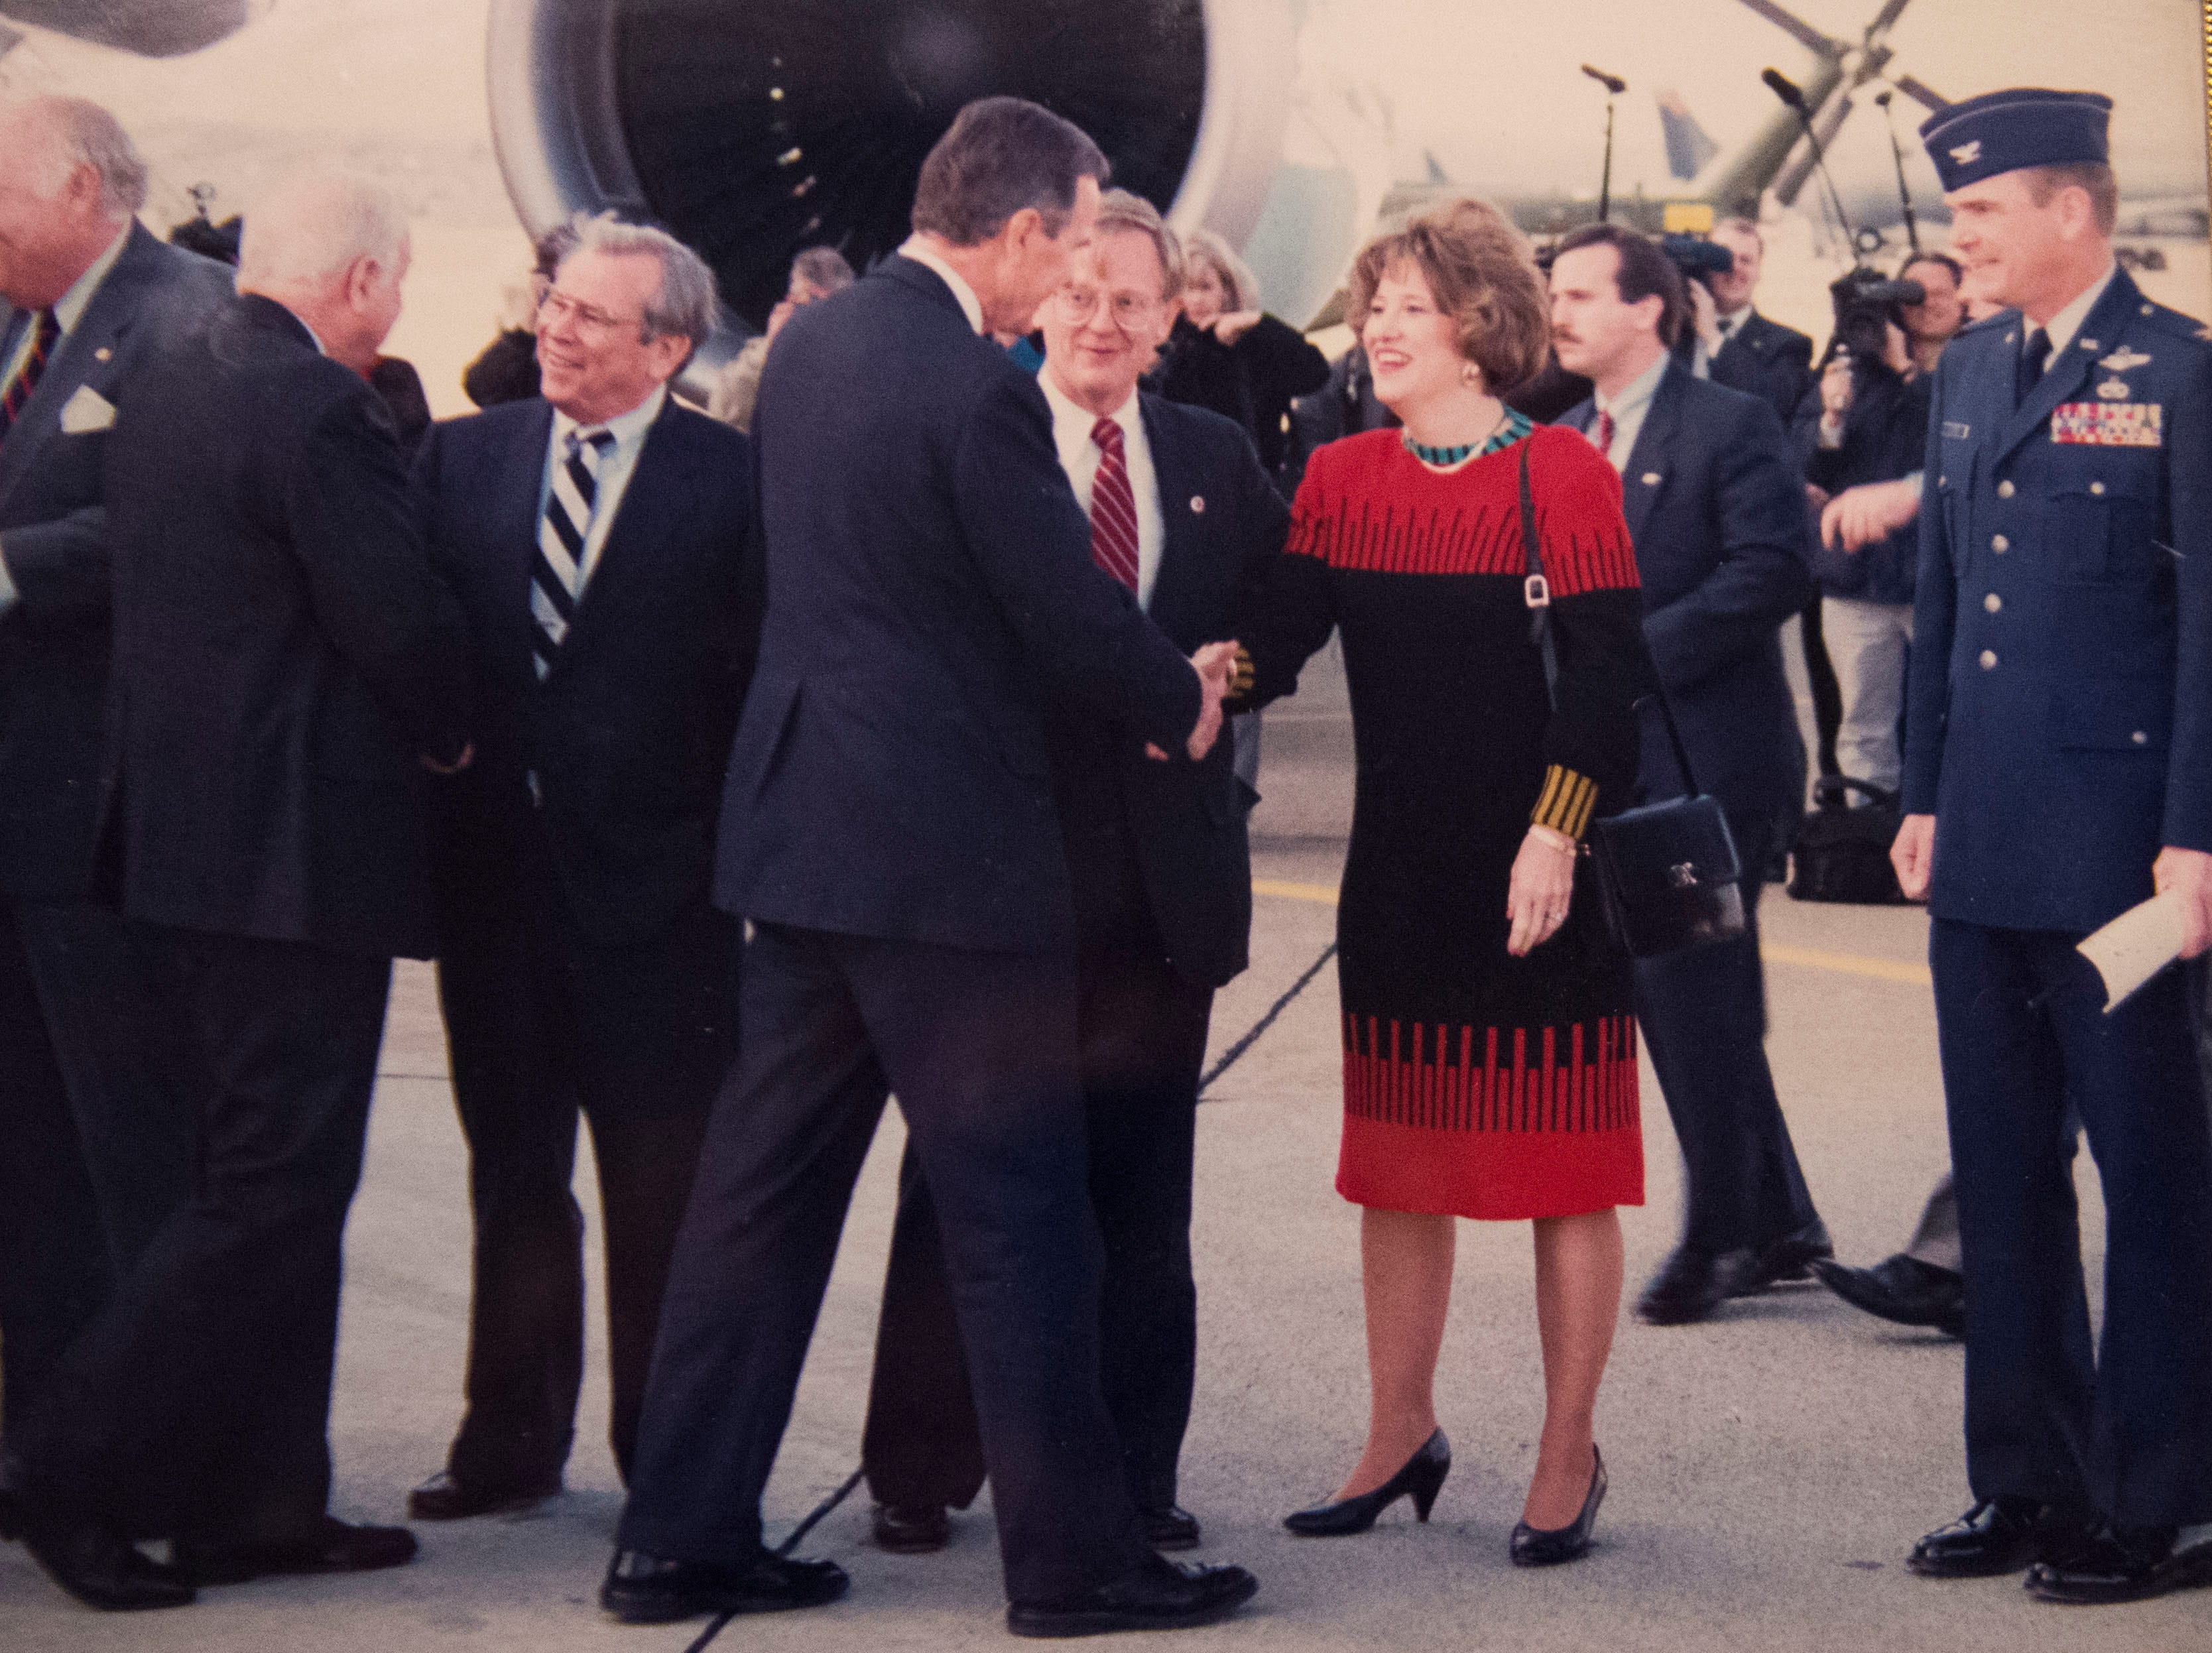 Among dignitaries greeting President George H.W. Bush in Knoxville in 1992 were, from left, Gov. Ned McWherter, U.S. Rep. Jimmy Quillen (back turned) Sen. Howard Baker, Victor and Joan Ashe, and base commander Col. Fred Forster. Bush was making a campaign stop for re-election but lost in November to Bill Clinton.